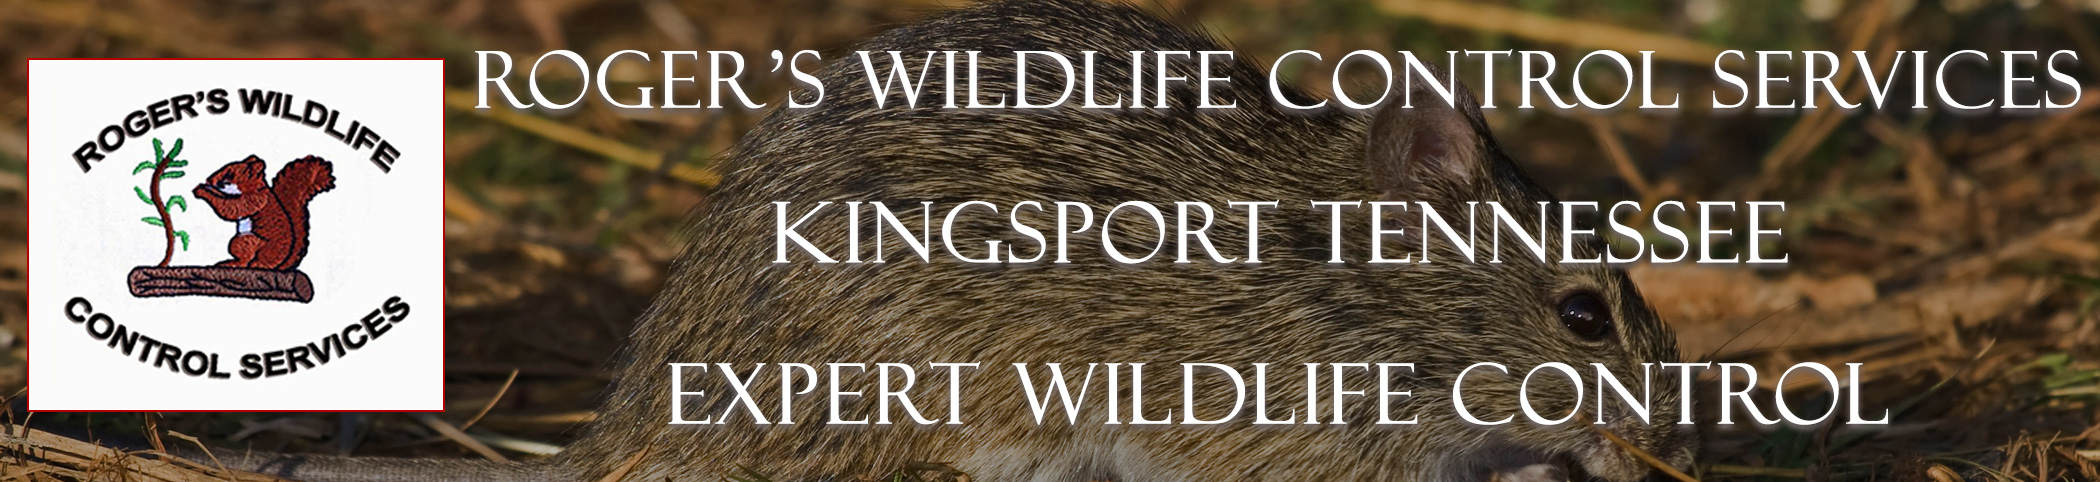 rogers_wildlife_Kingsport,_TN_headers